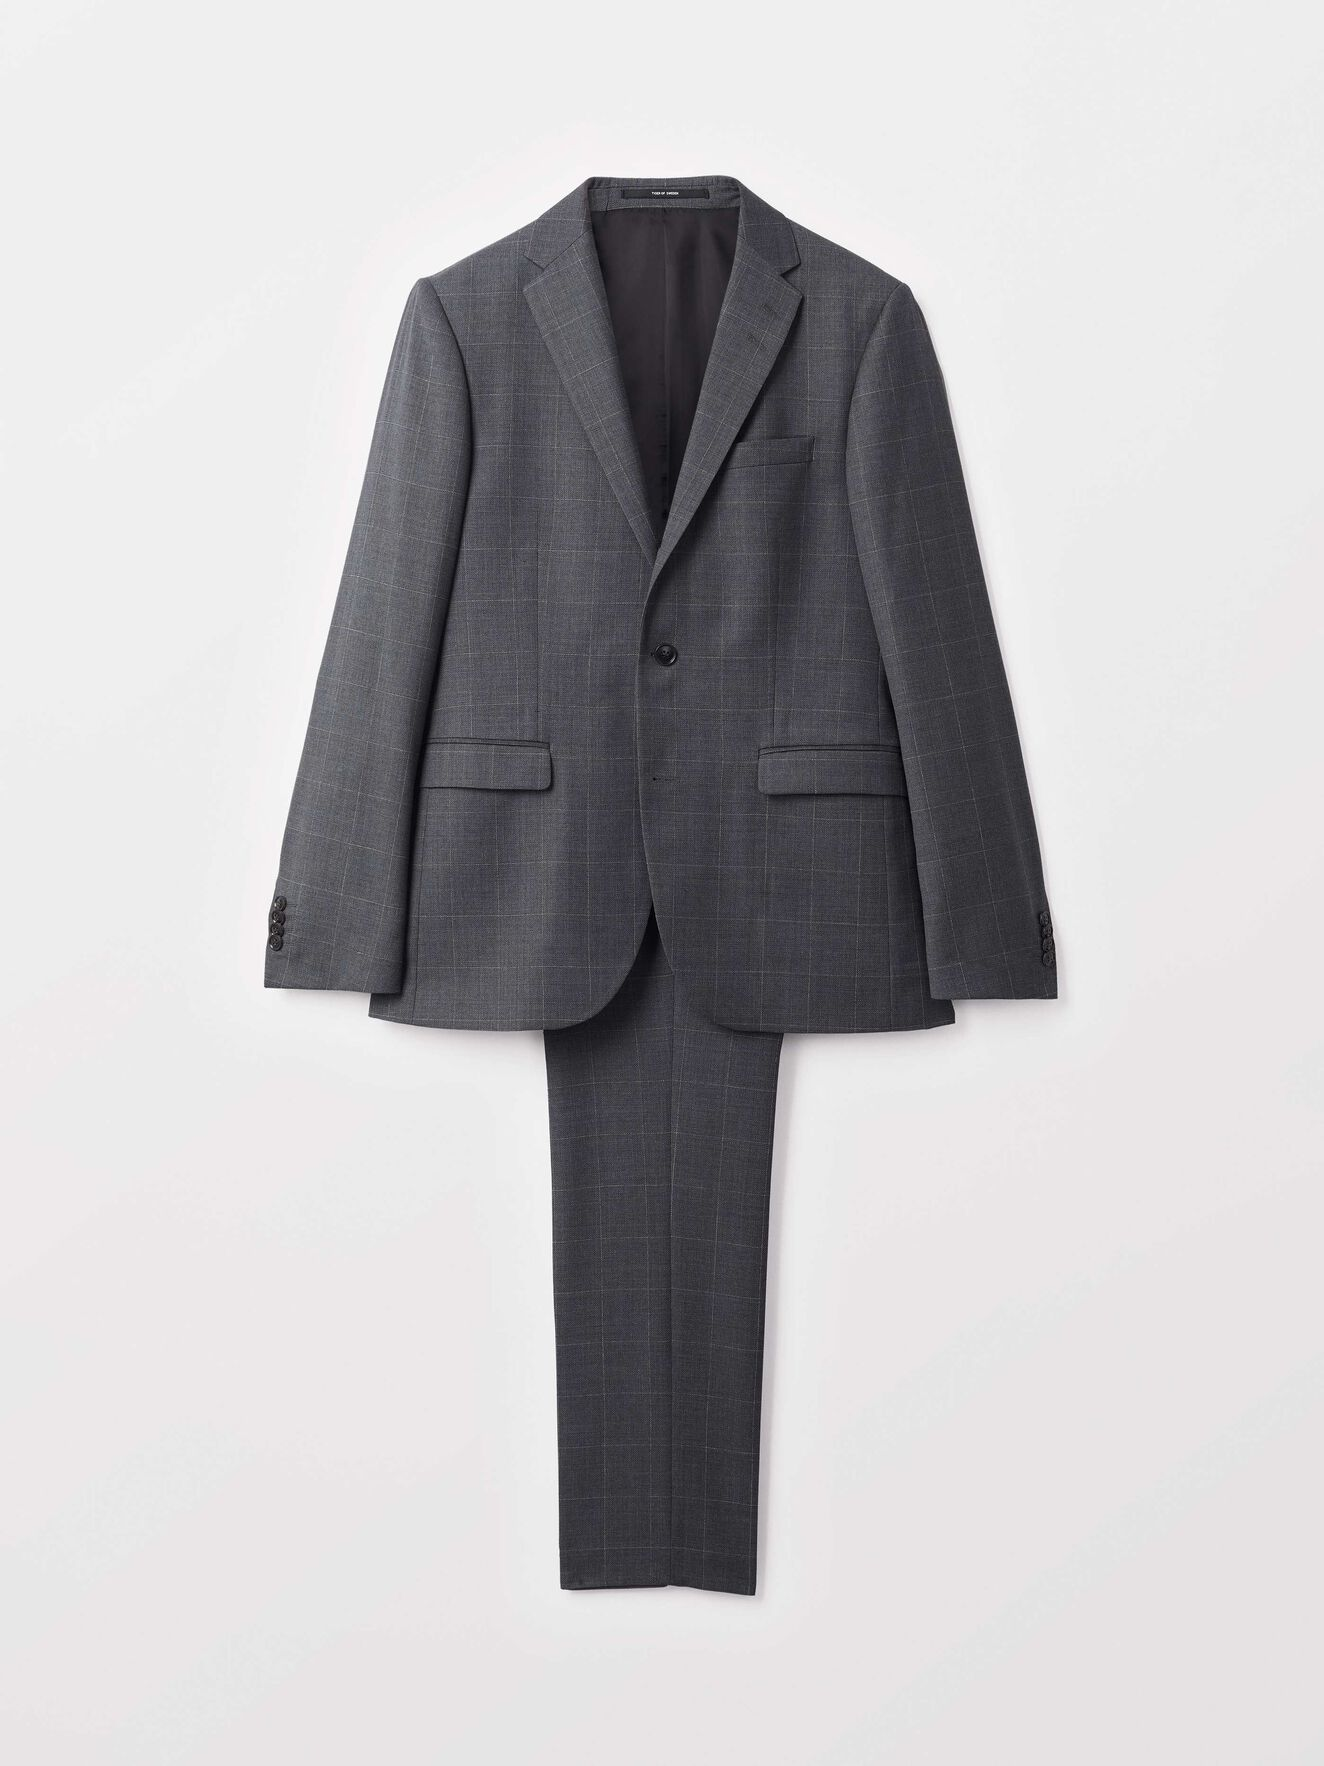 Henrie Suit in Iron Gate from Tiger of Sweden